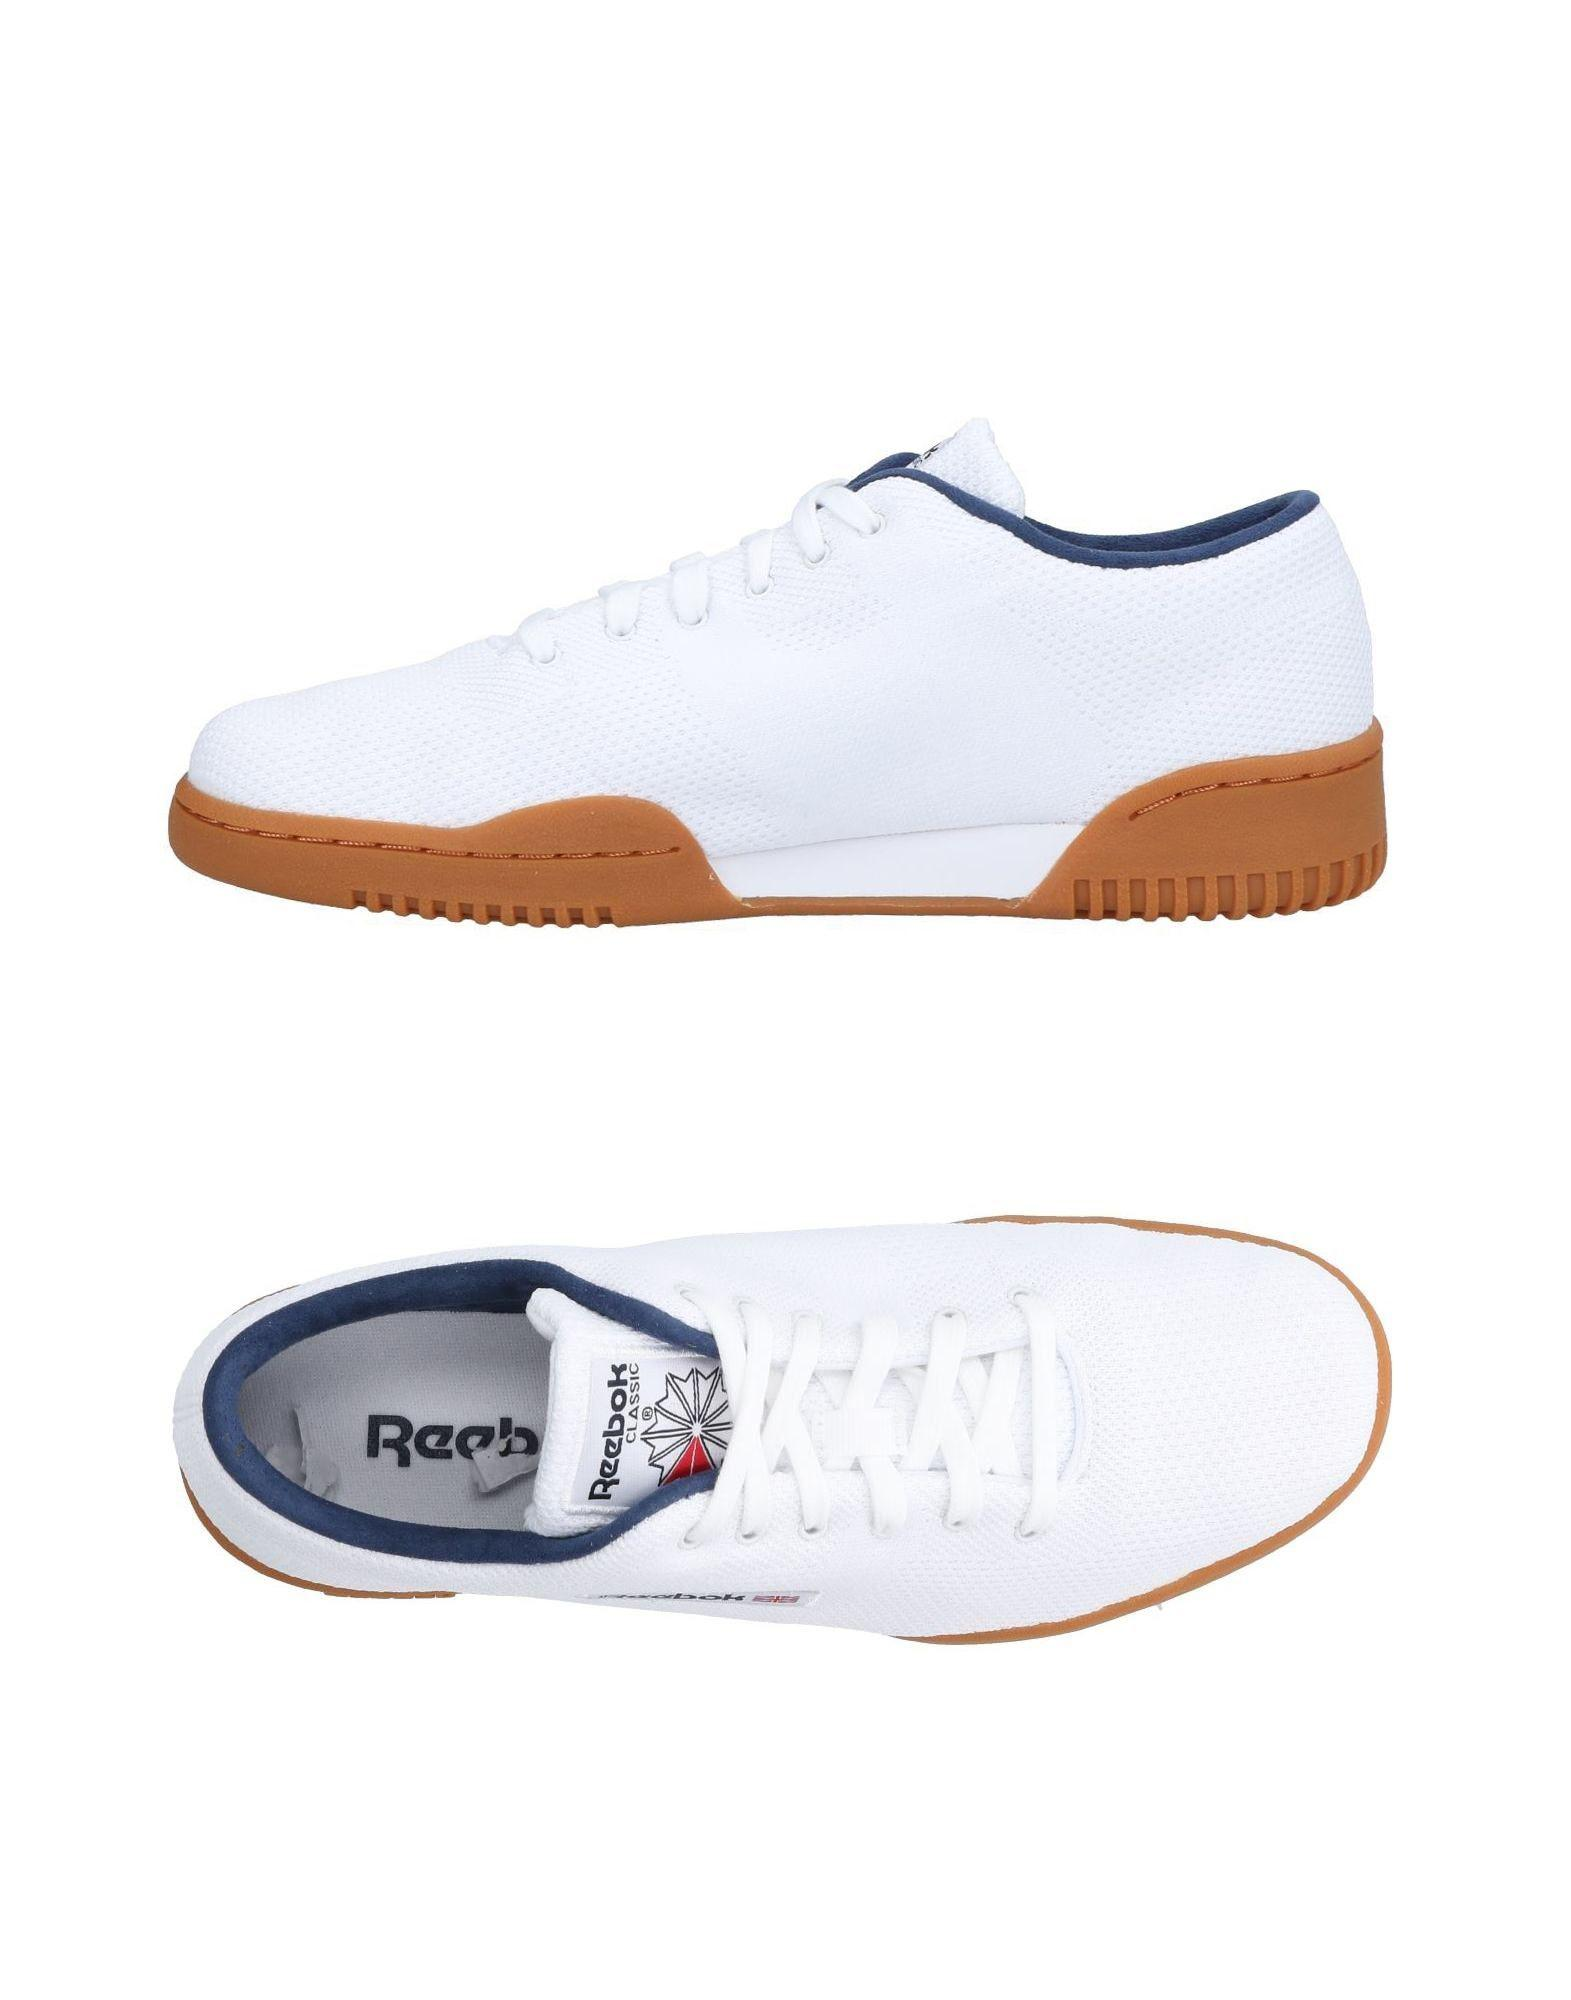 Lyst - Reebok Low-tops   Sneakers in White for Men fa9e33588